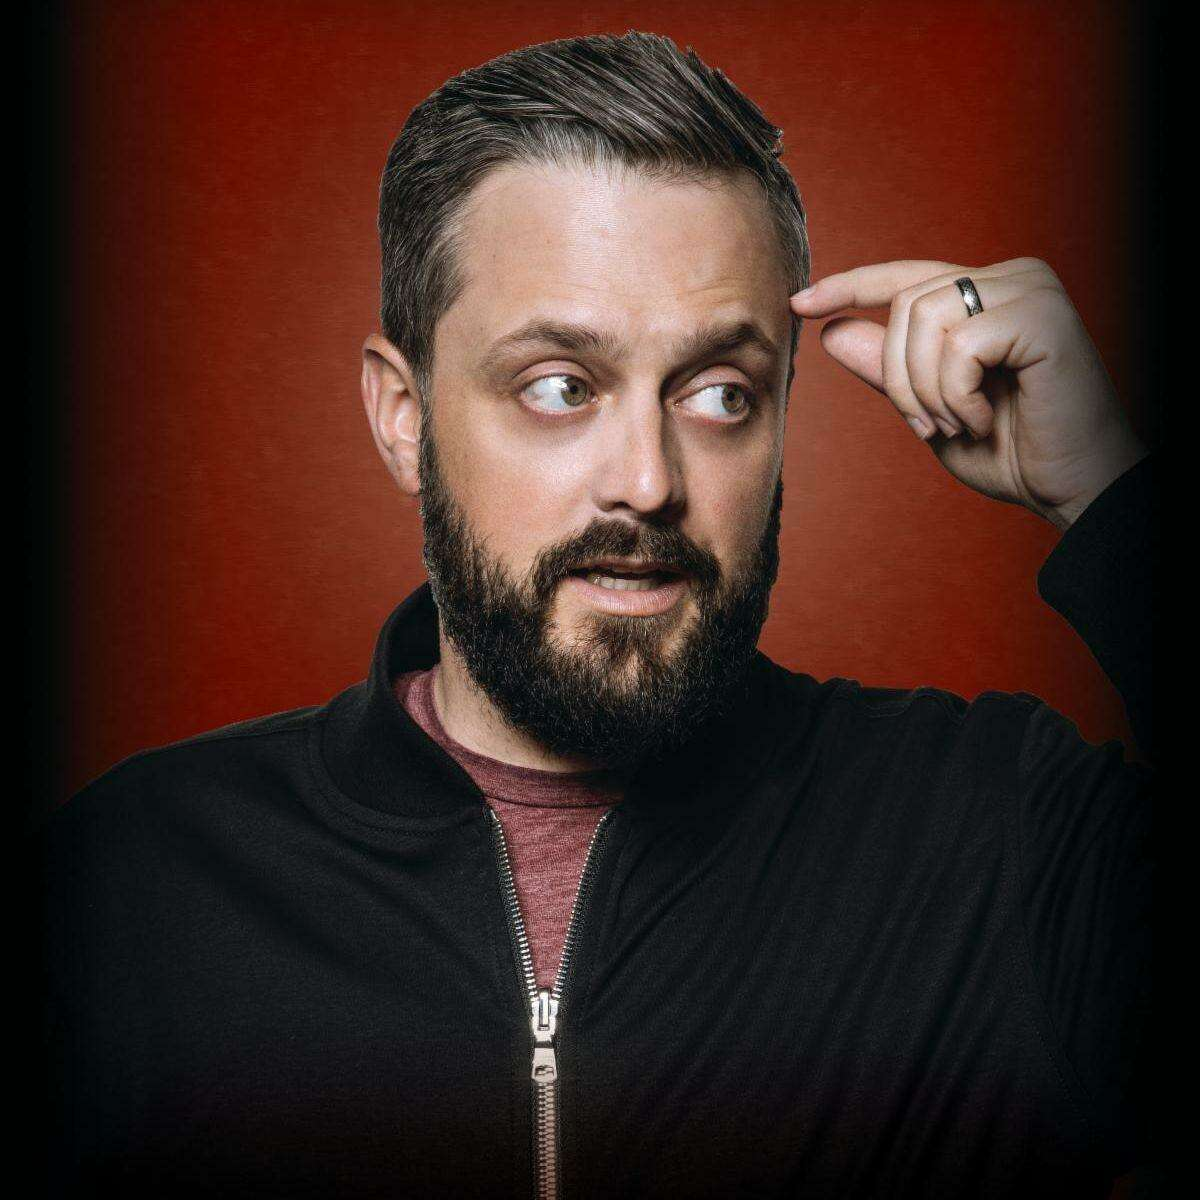 """Comedian Nate Bargatze's """"Good Problem To Have"""" Tour stop at the Warner Theatre has been rescheduled to Sept. 18, 2021."""